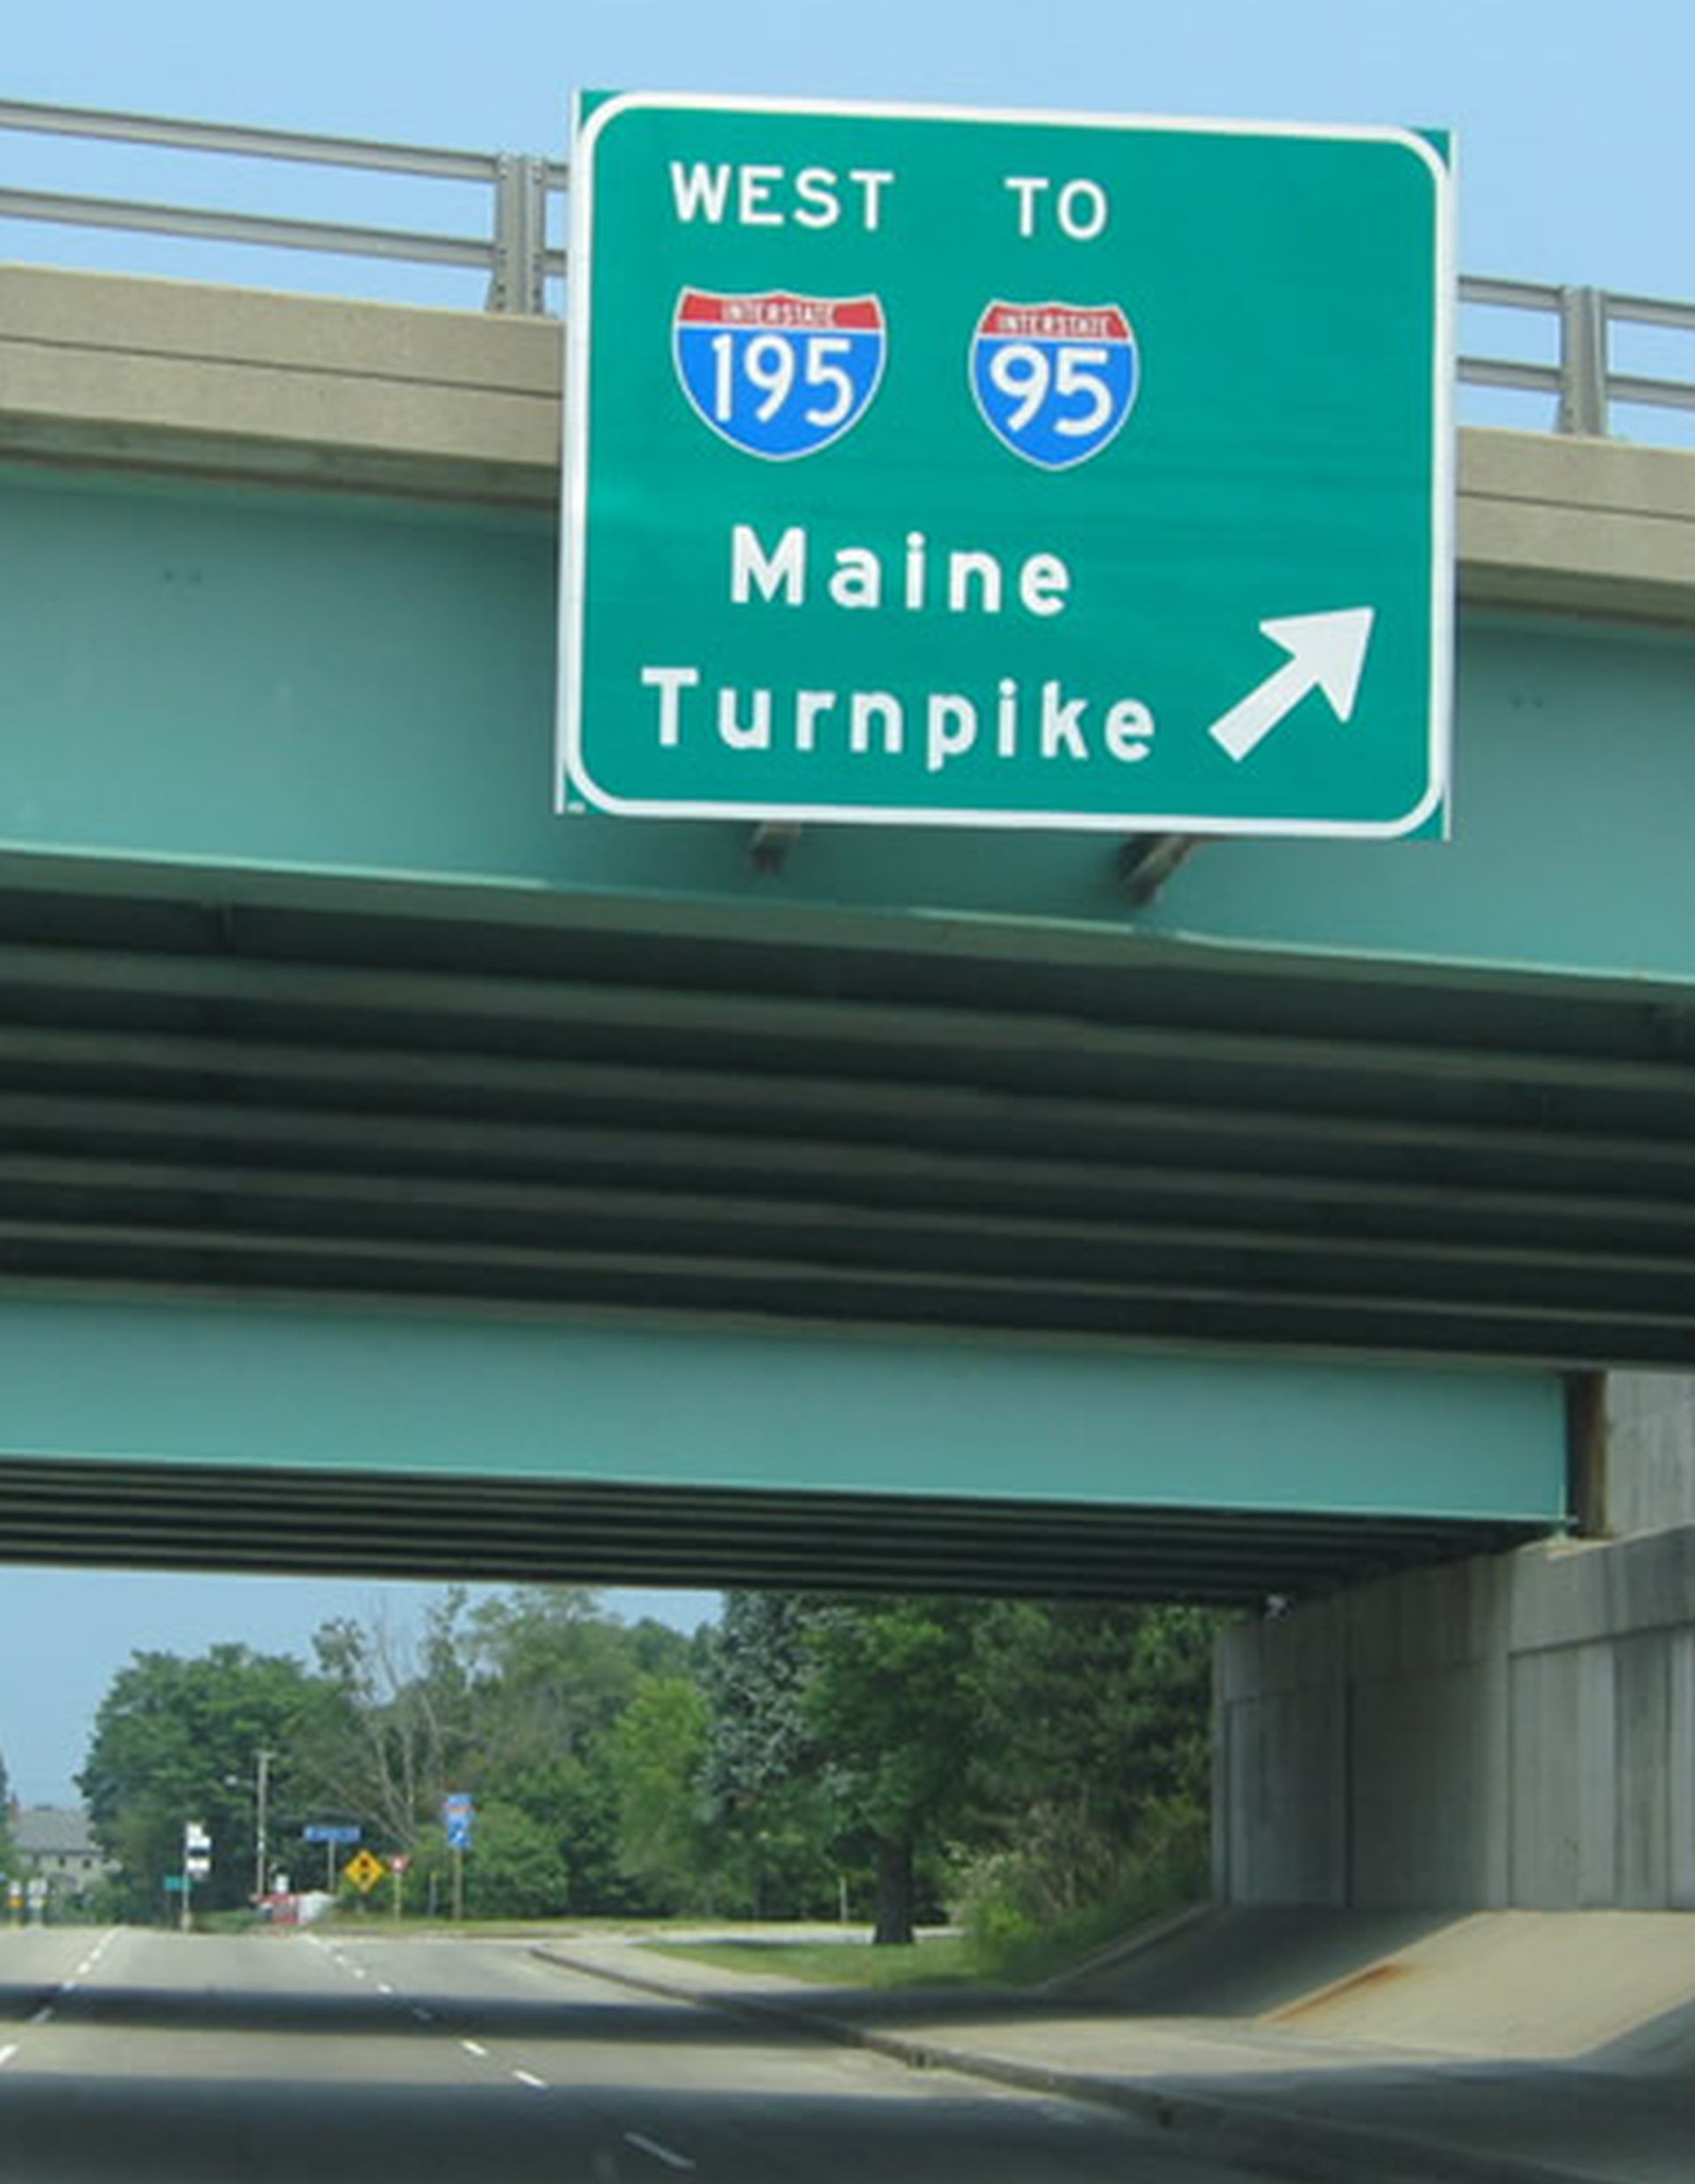 The heaviuest Memorial Day traffic on the Maine Turnpike is expected from 4 to 7 p.m. on Monday. JOURNAL TRIBUNE/ file photo